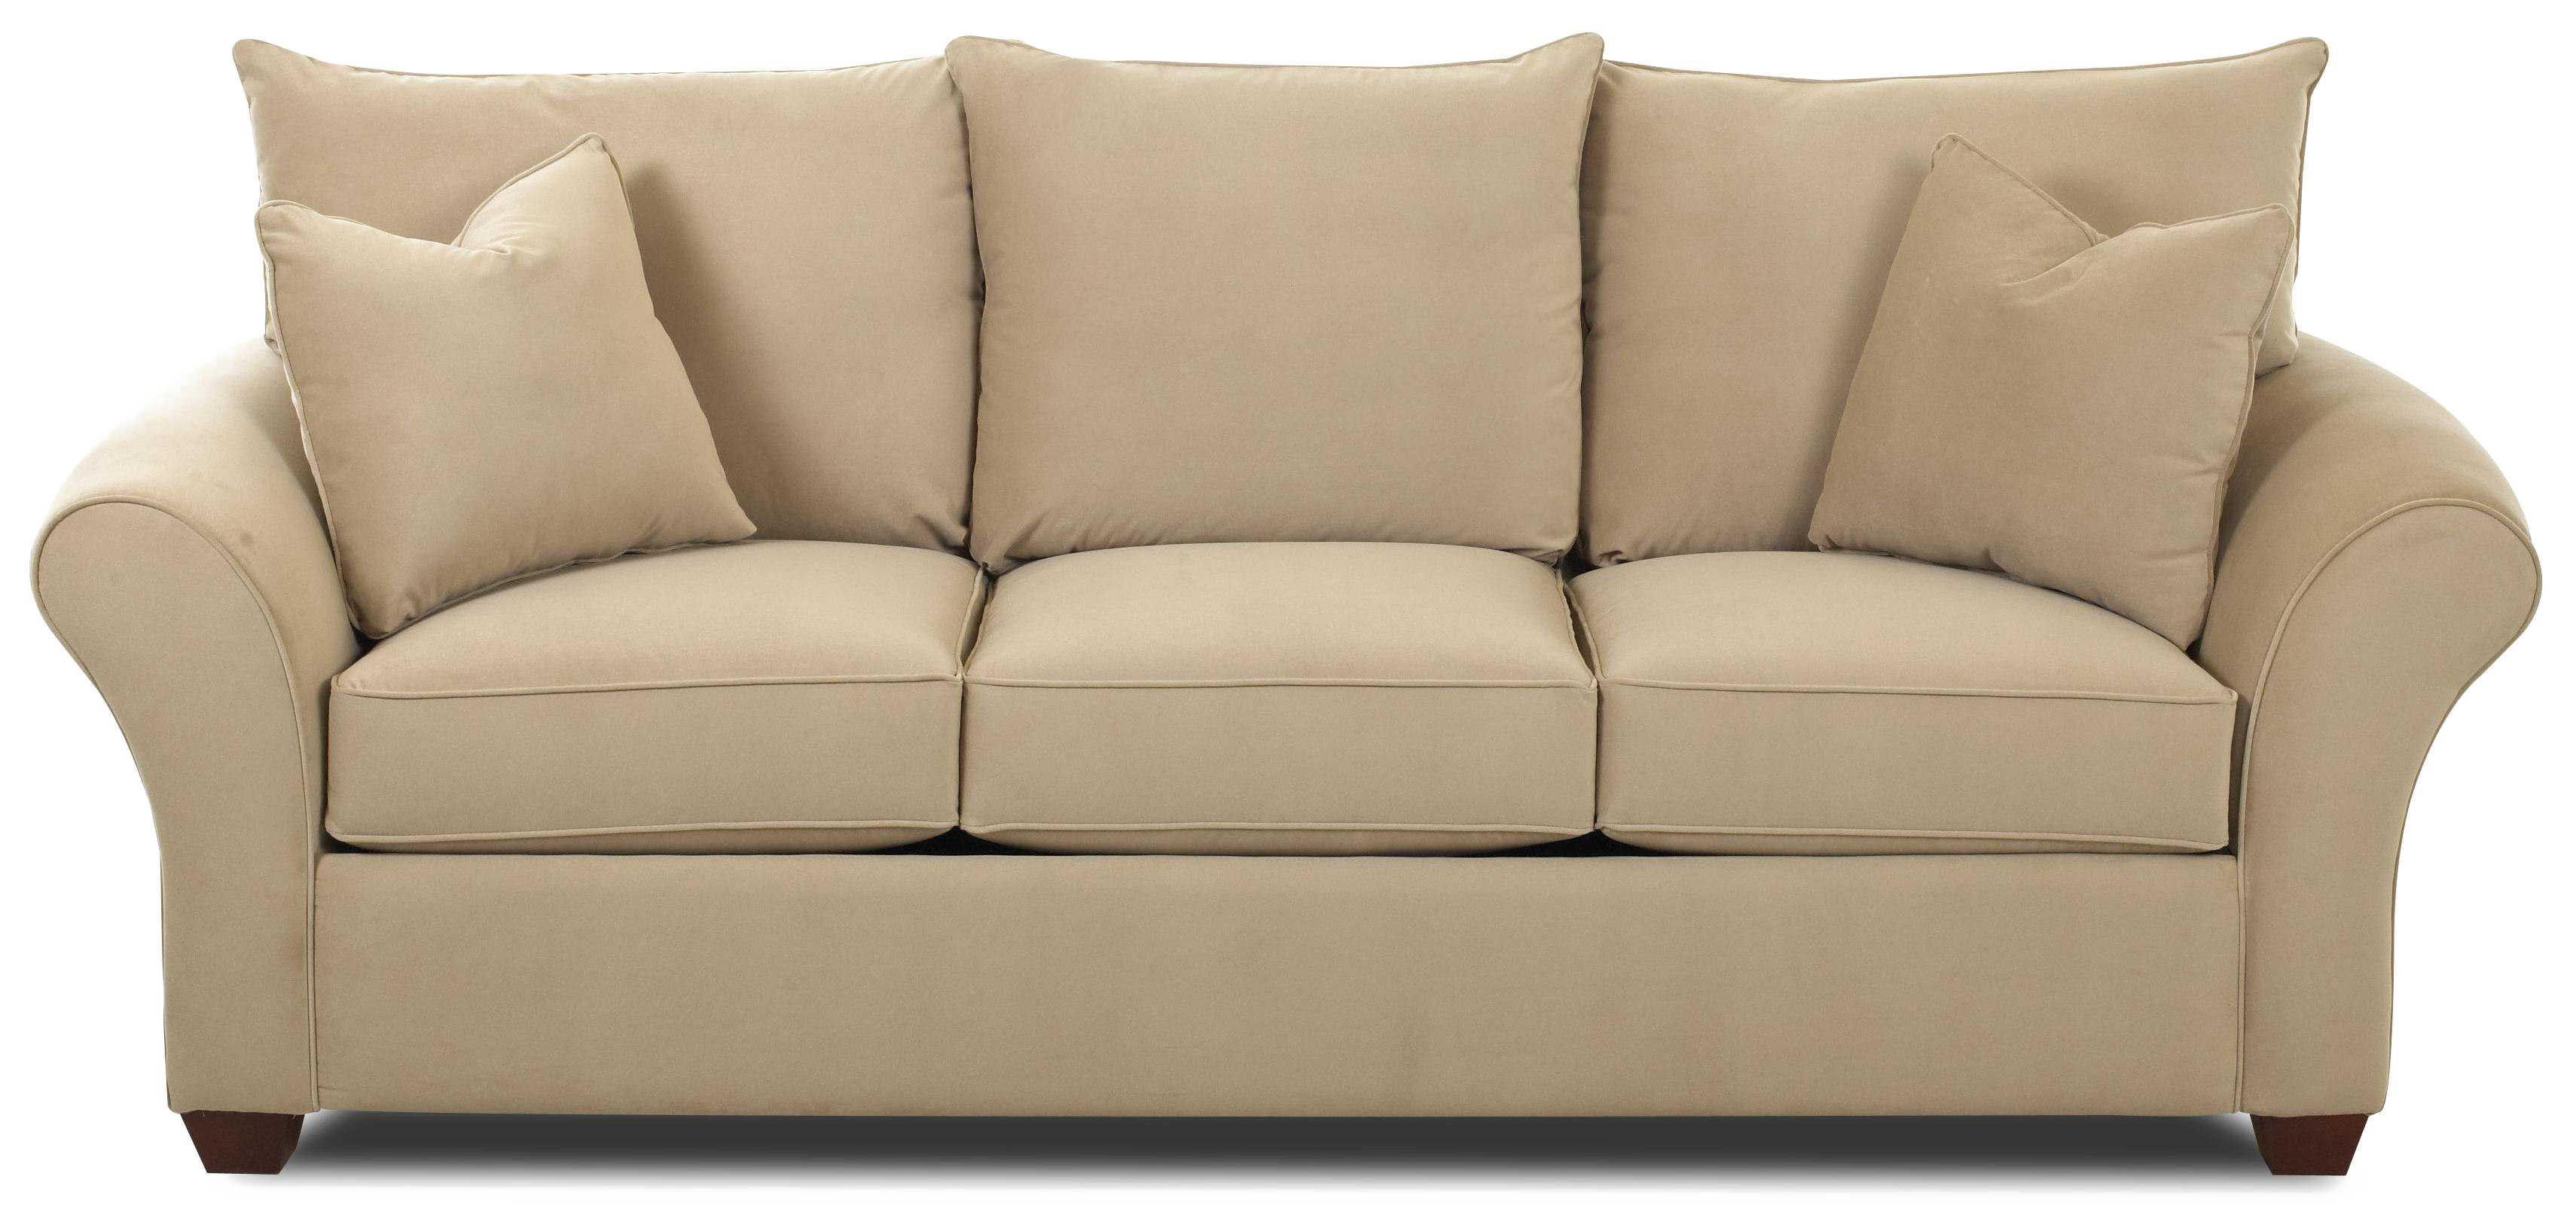 Transparent couch beige. Sofa png images free